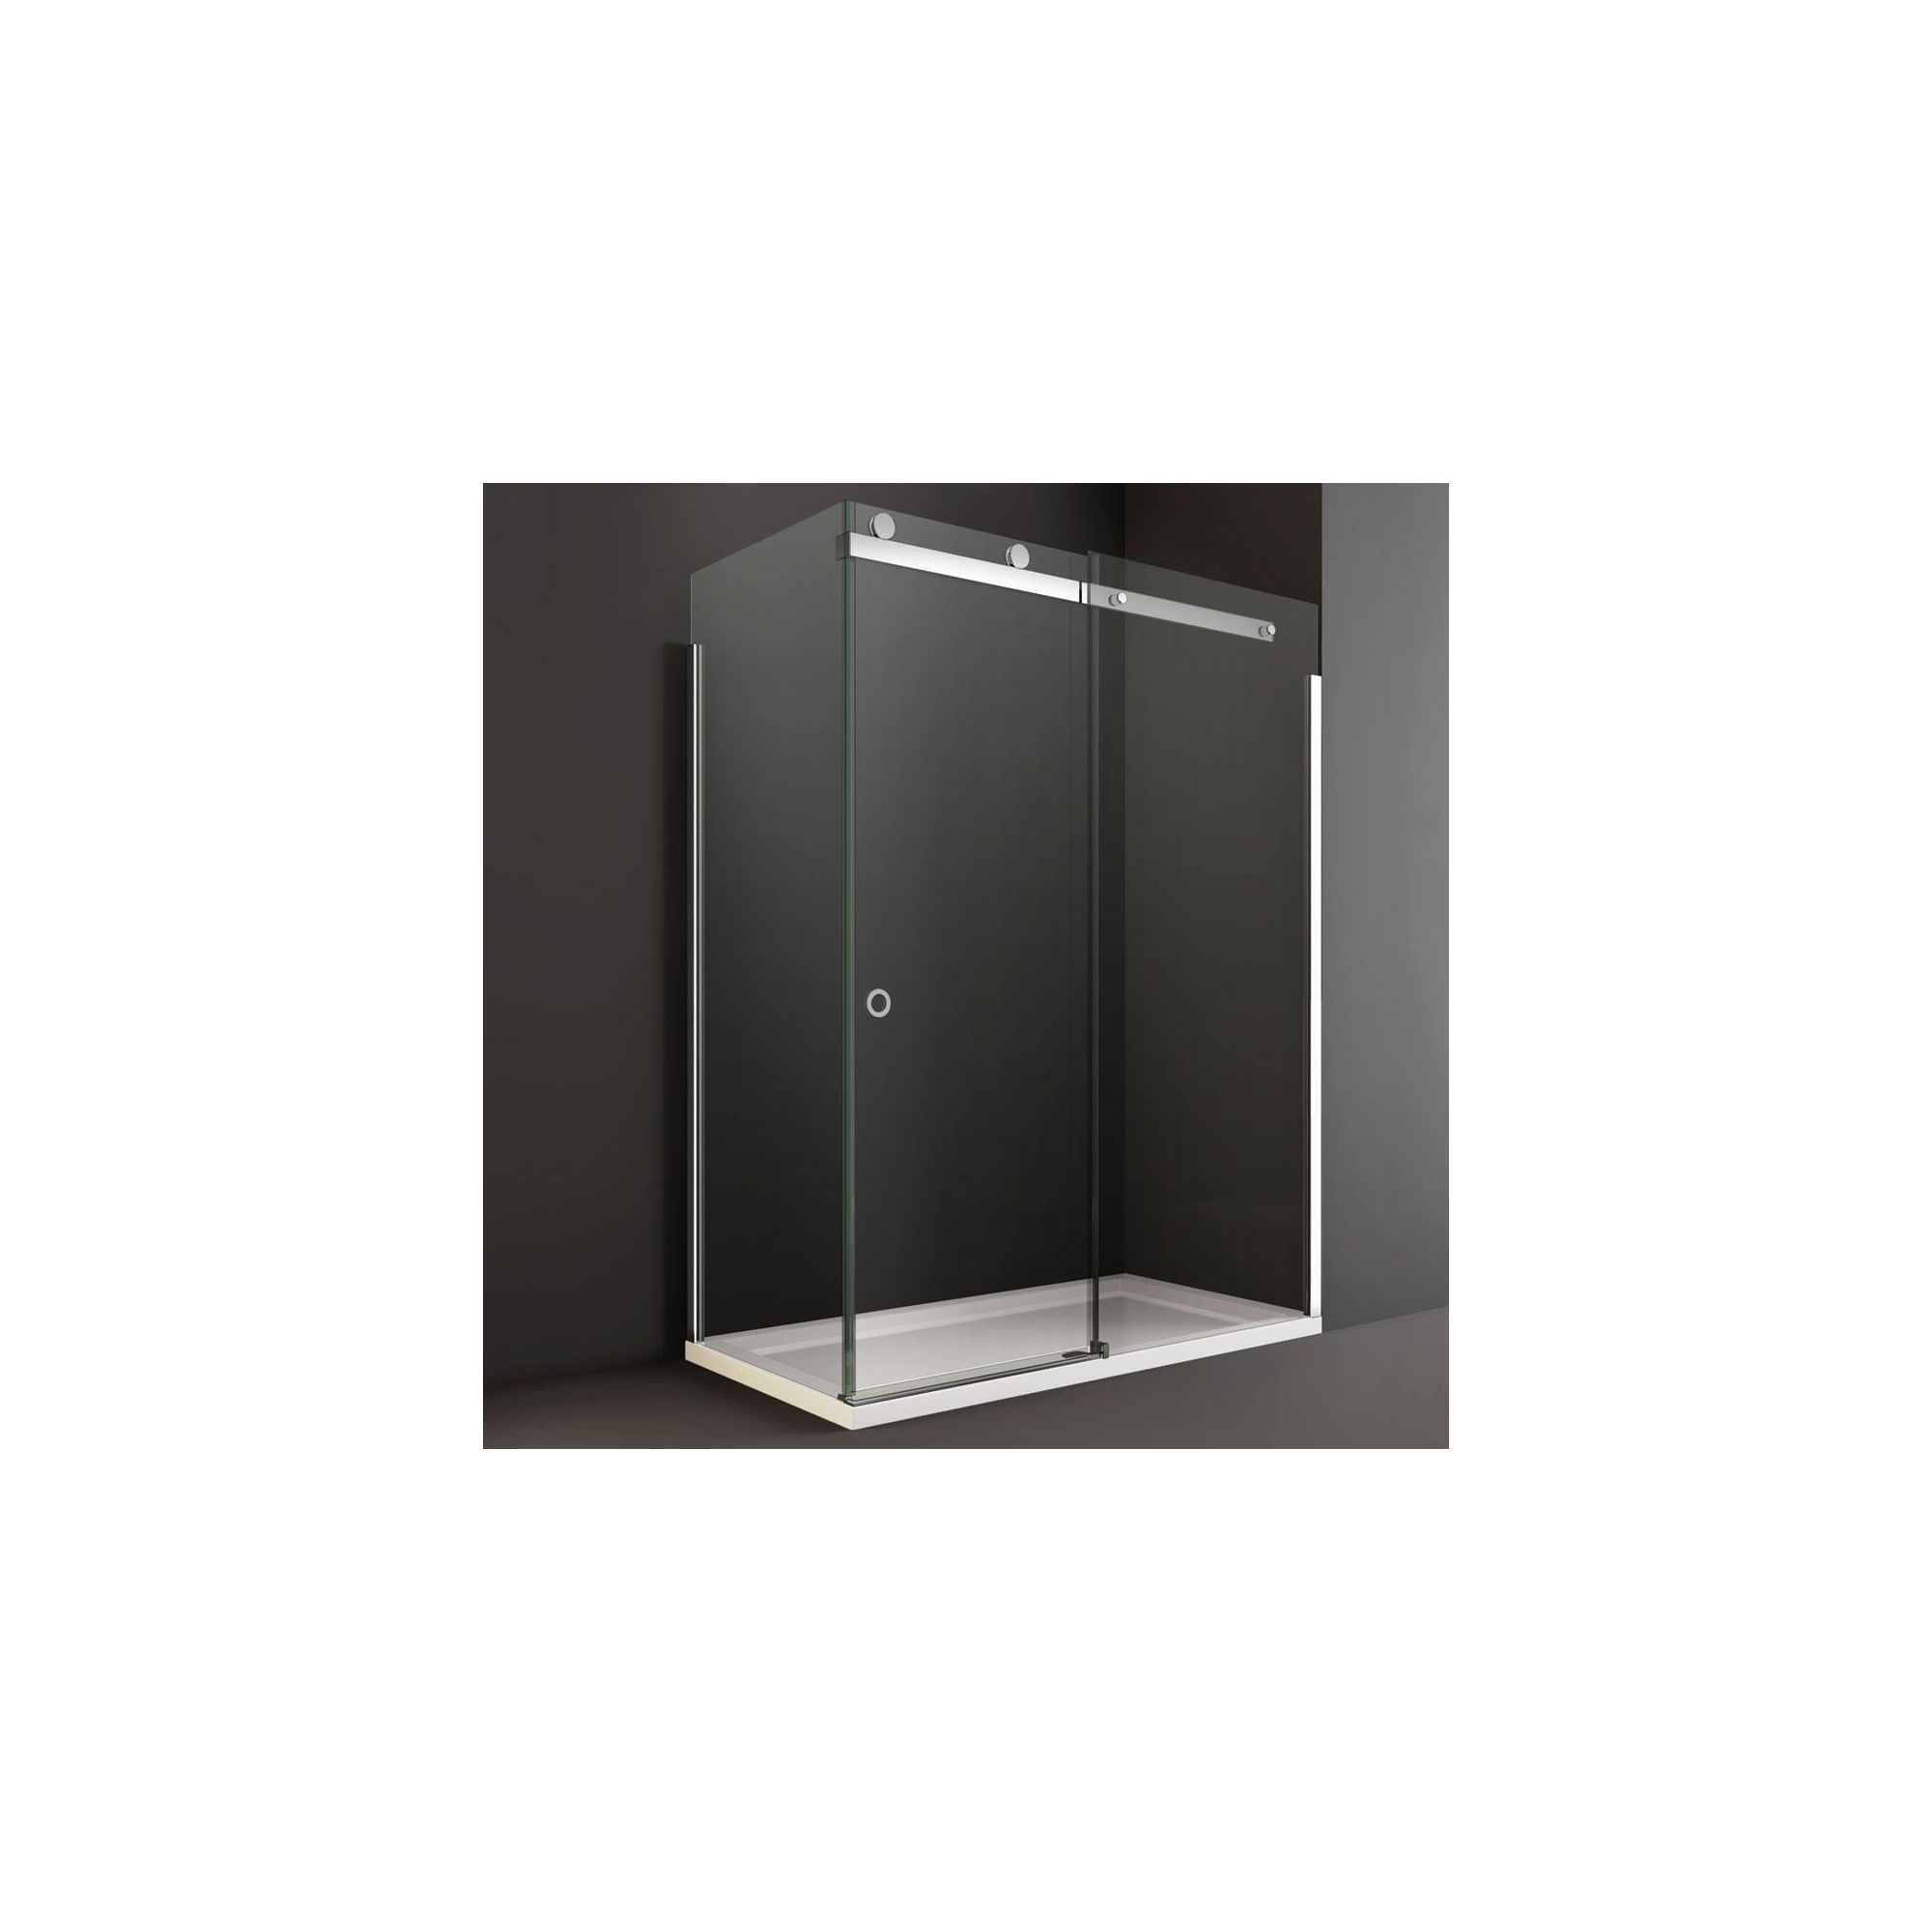 Merlyn Series 10 Sliding Shower Door, 1400mm Wide, 10mm Smoked Glass, Right Handed at Tesco Direct